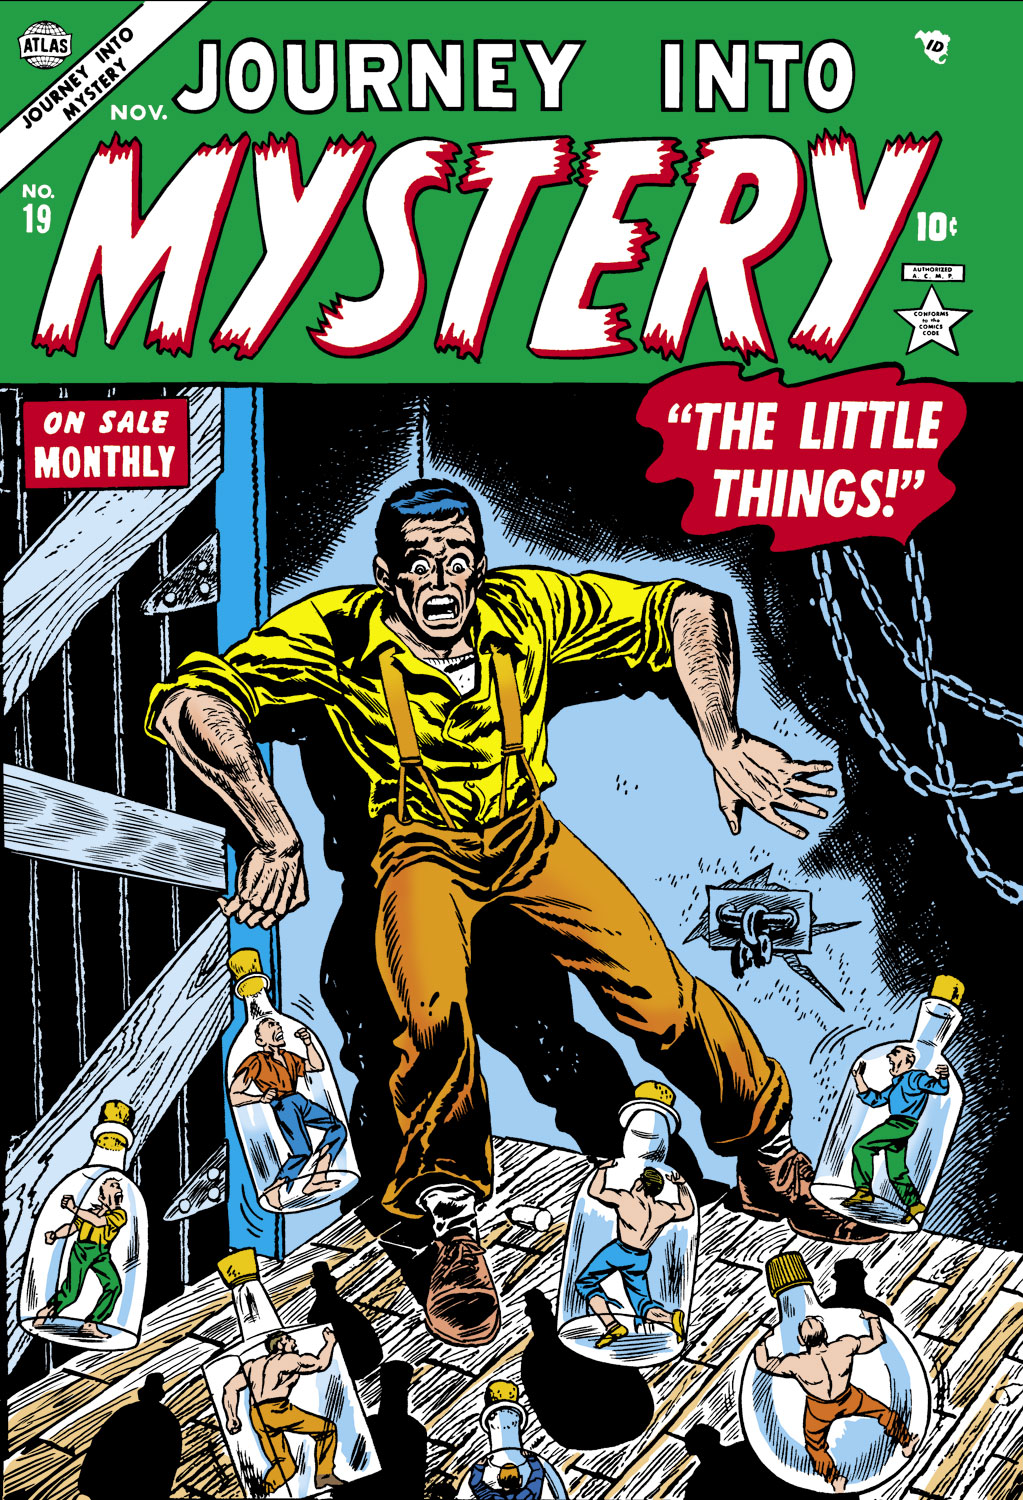 Journey Into Mystery (1952) #19